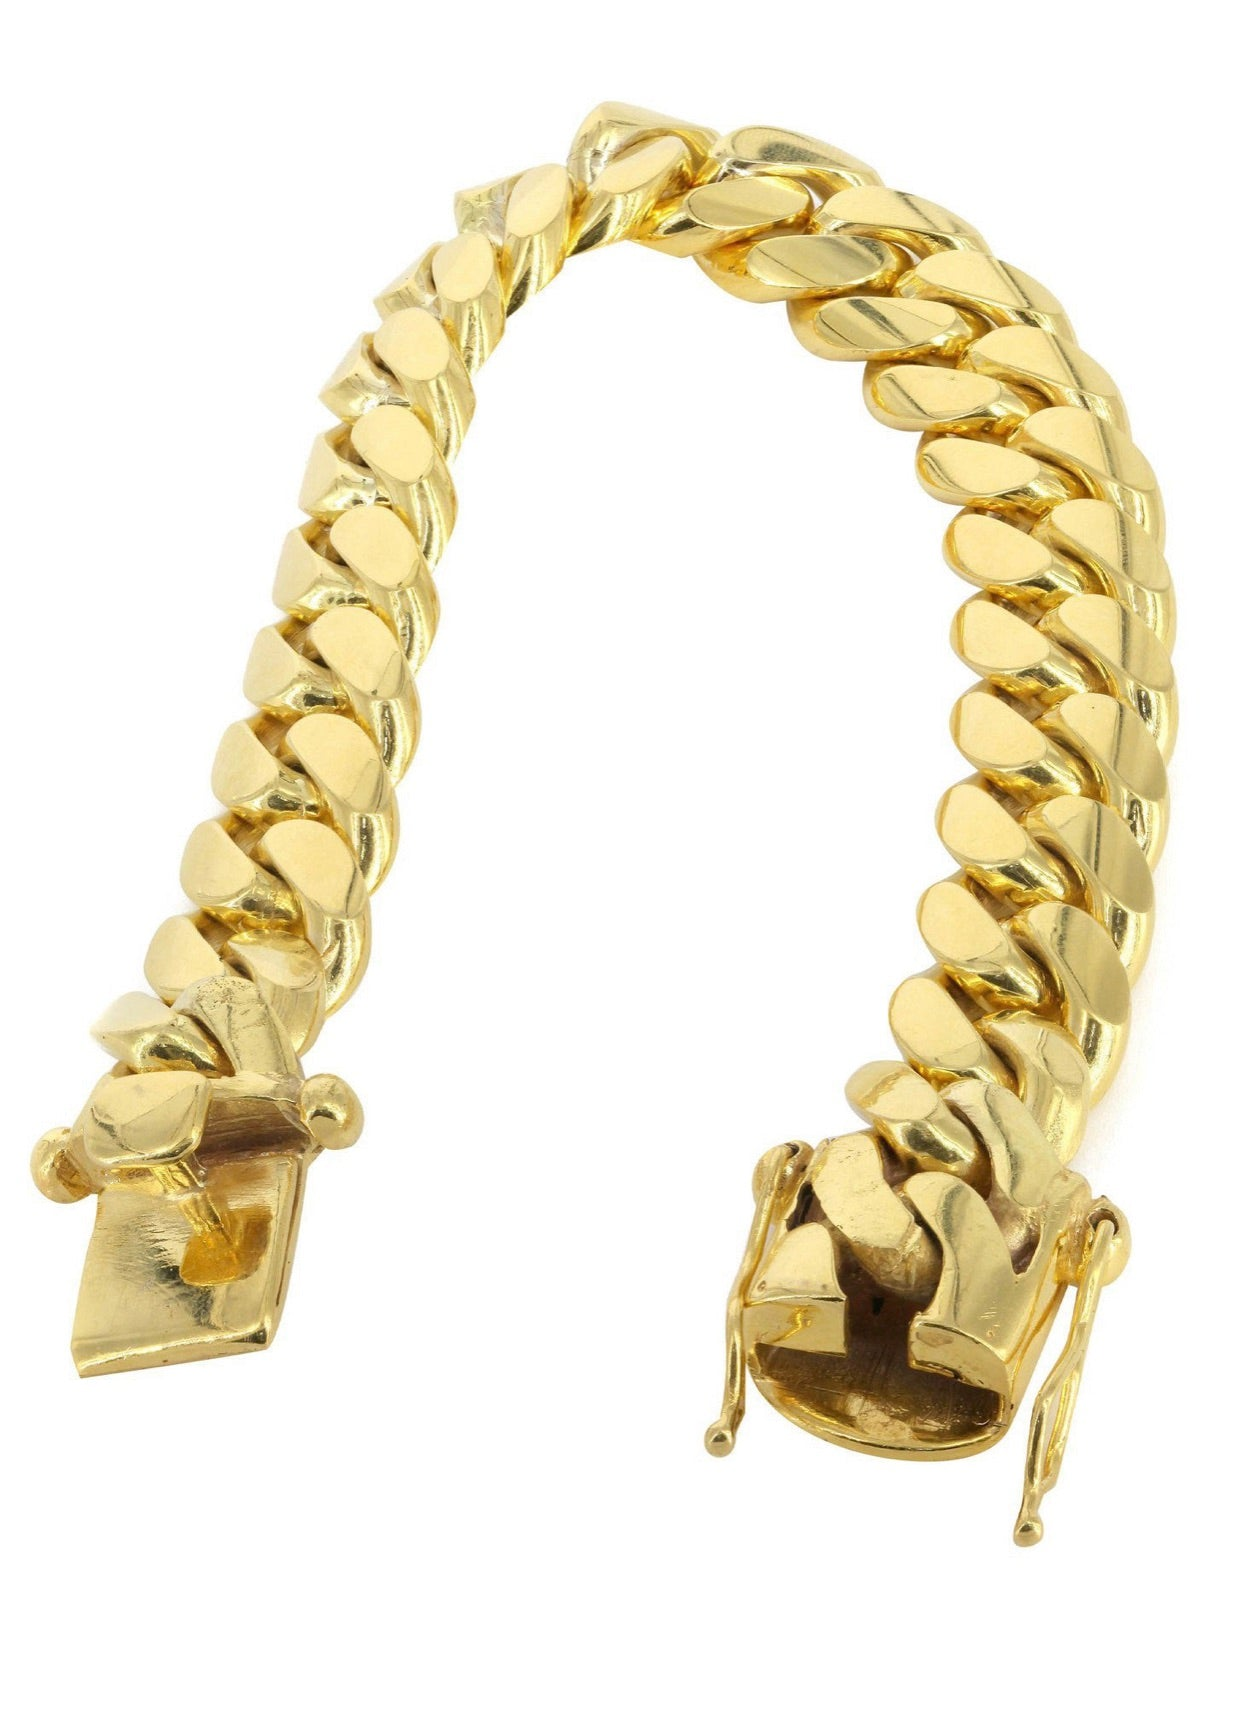 Solid Mens Miami Cuban Link Bracelet 14K Yellow Gold - A&M